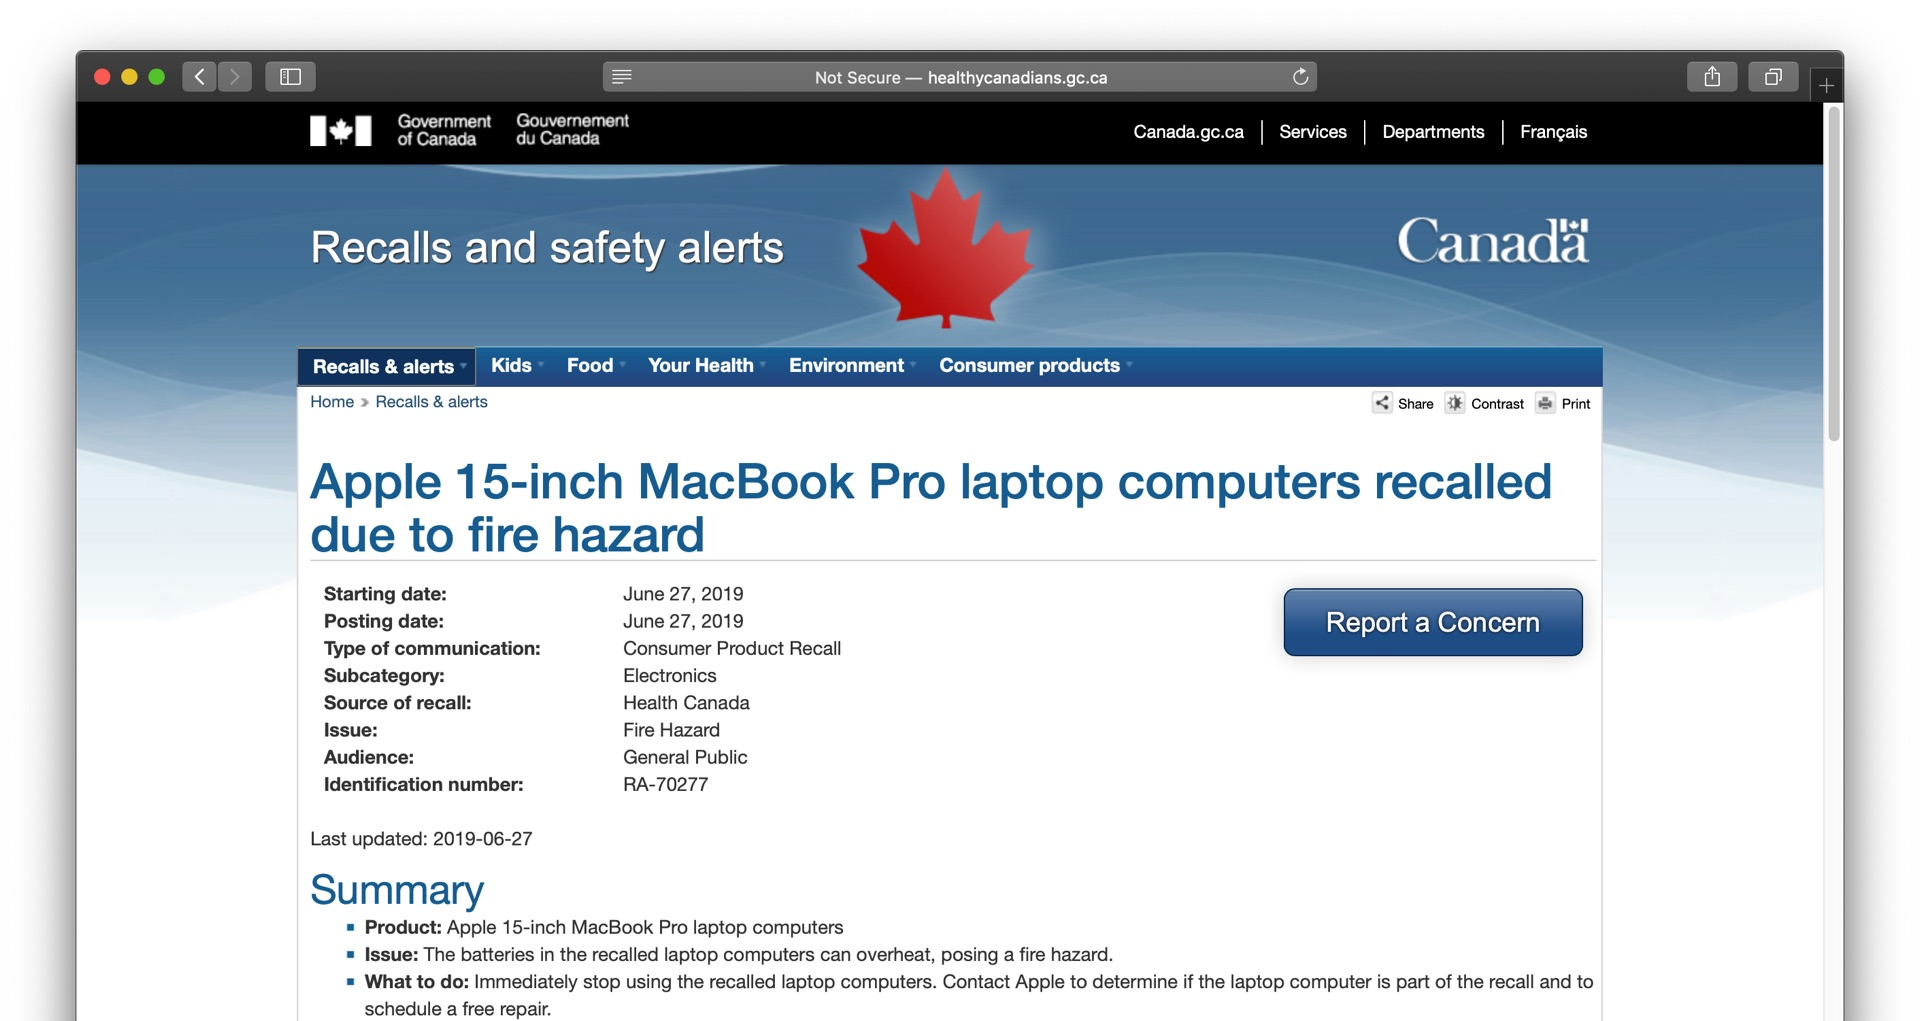 Apple 15-inch MacBook Pro laptop computers recalled due to fire hazard